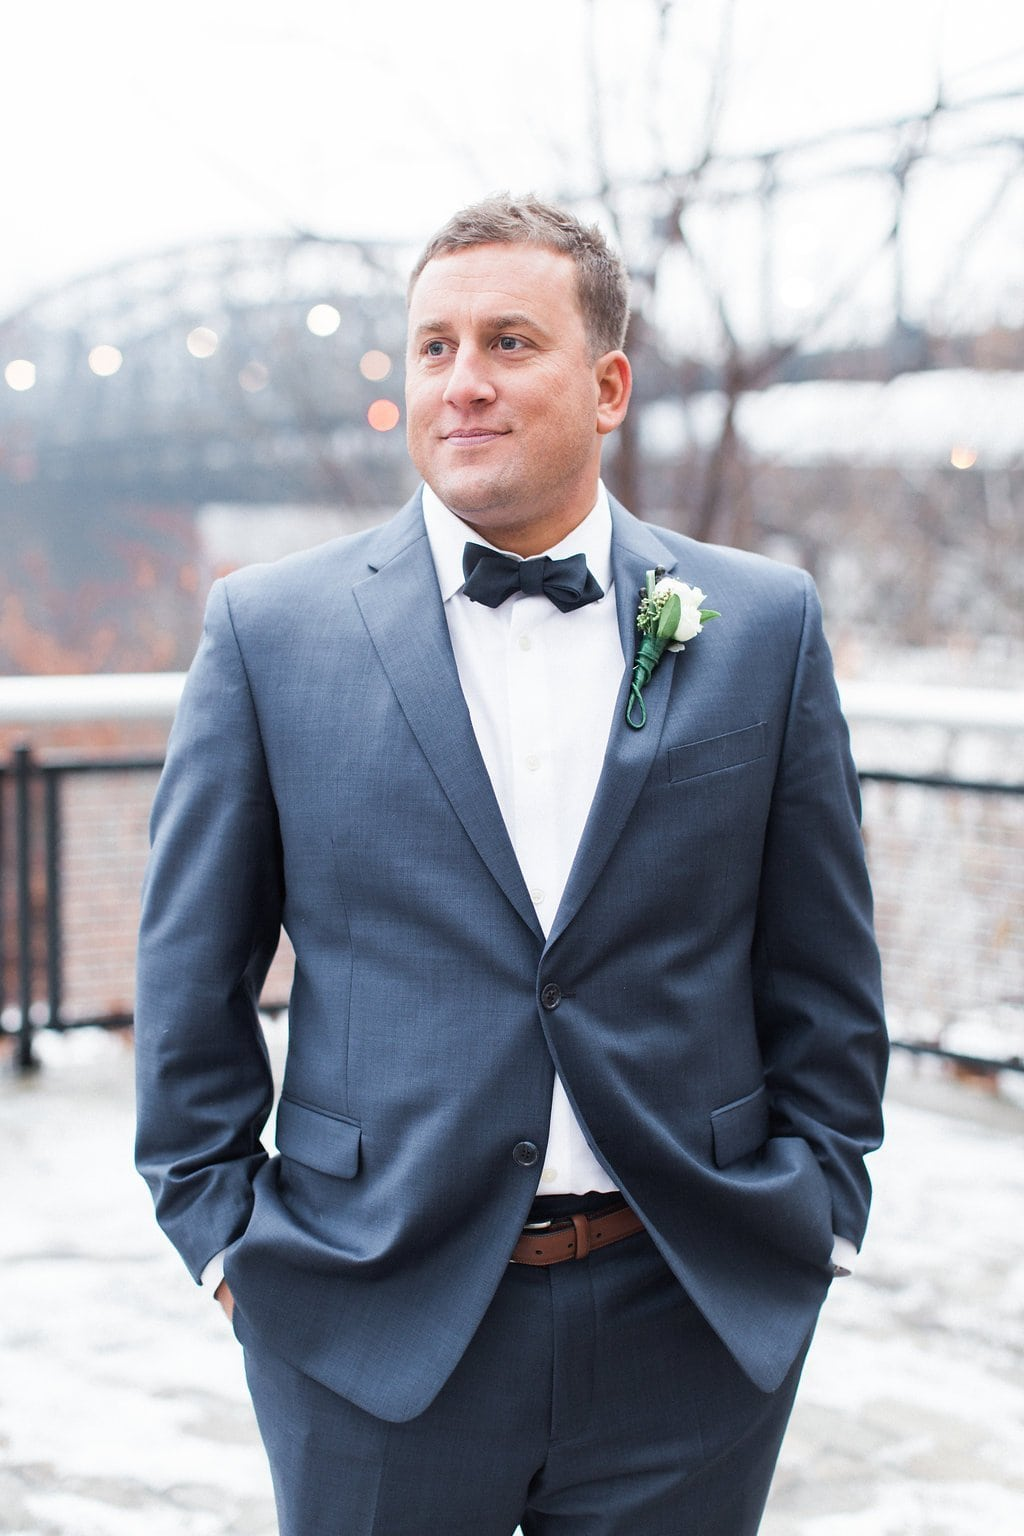 Portrait of the groom outside in the snow during winter wedding at J. Verno Studios - J Verno Studios Winter Wedding